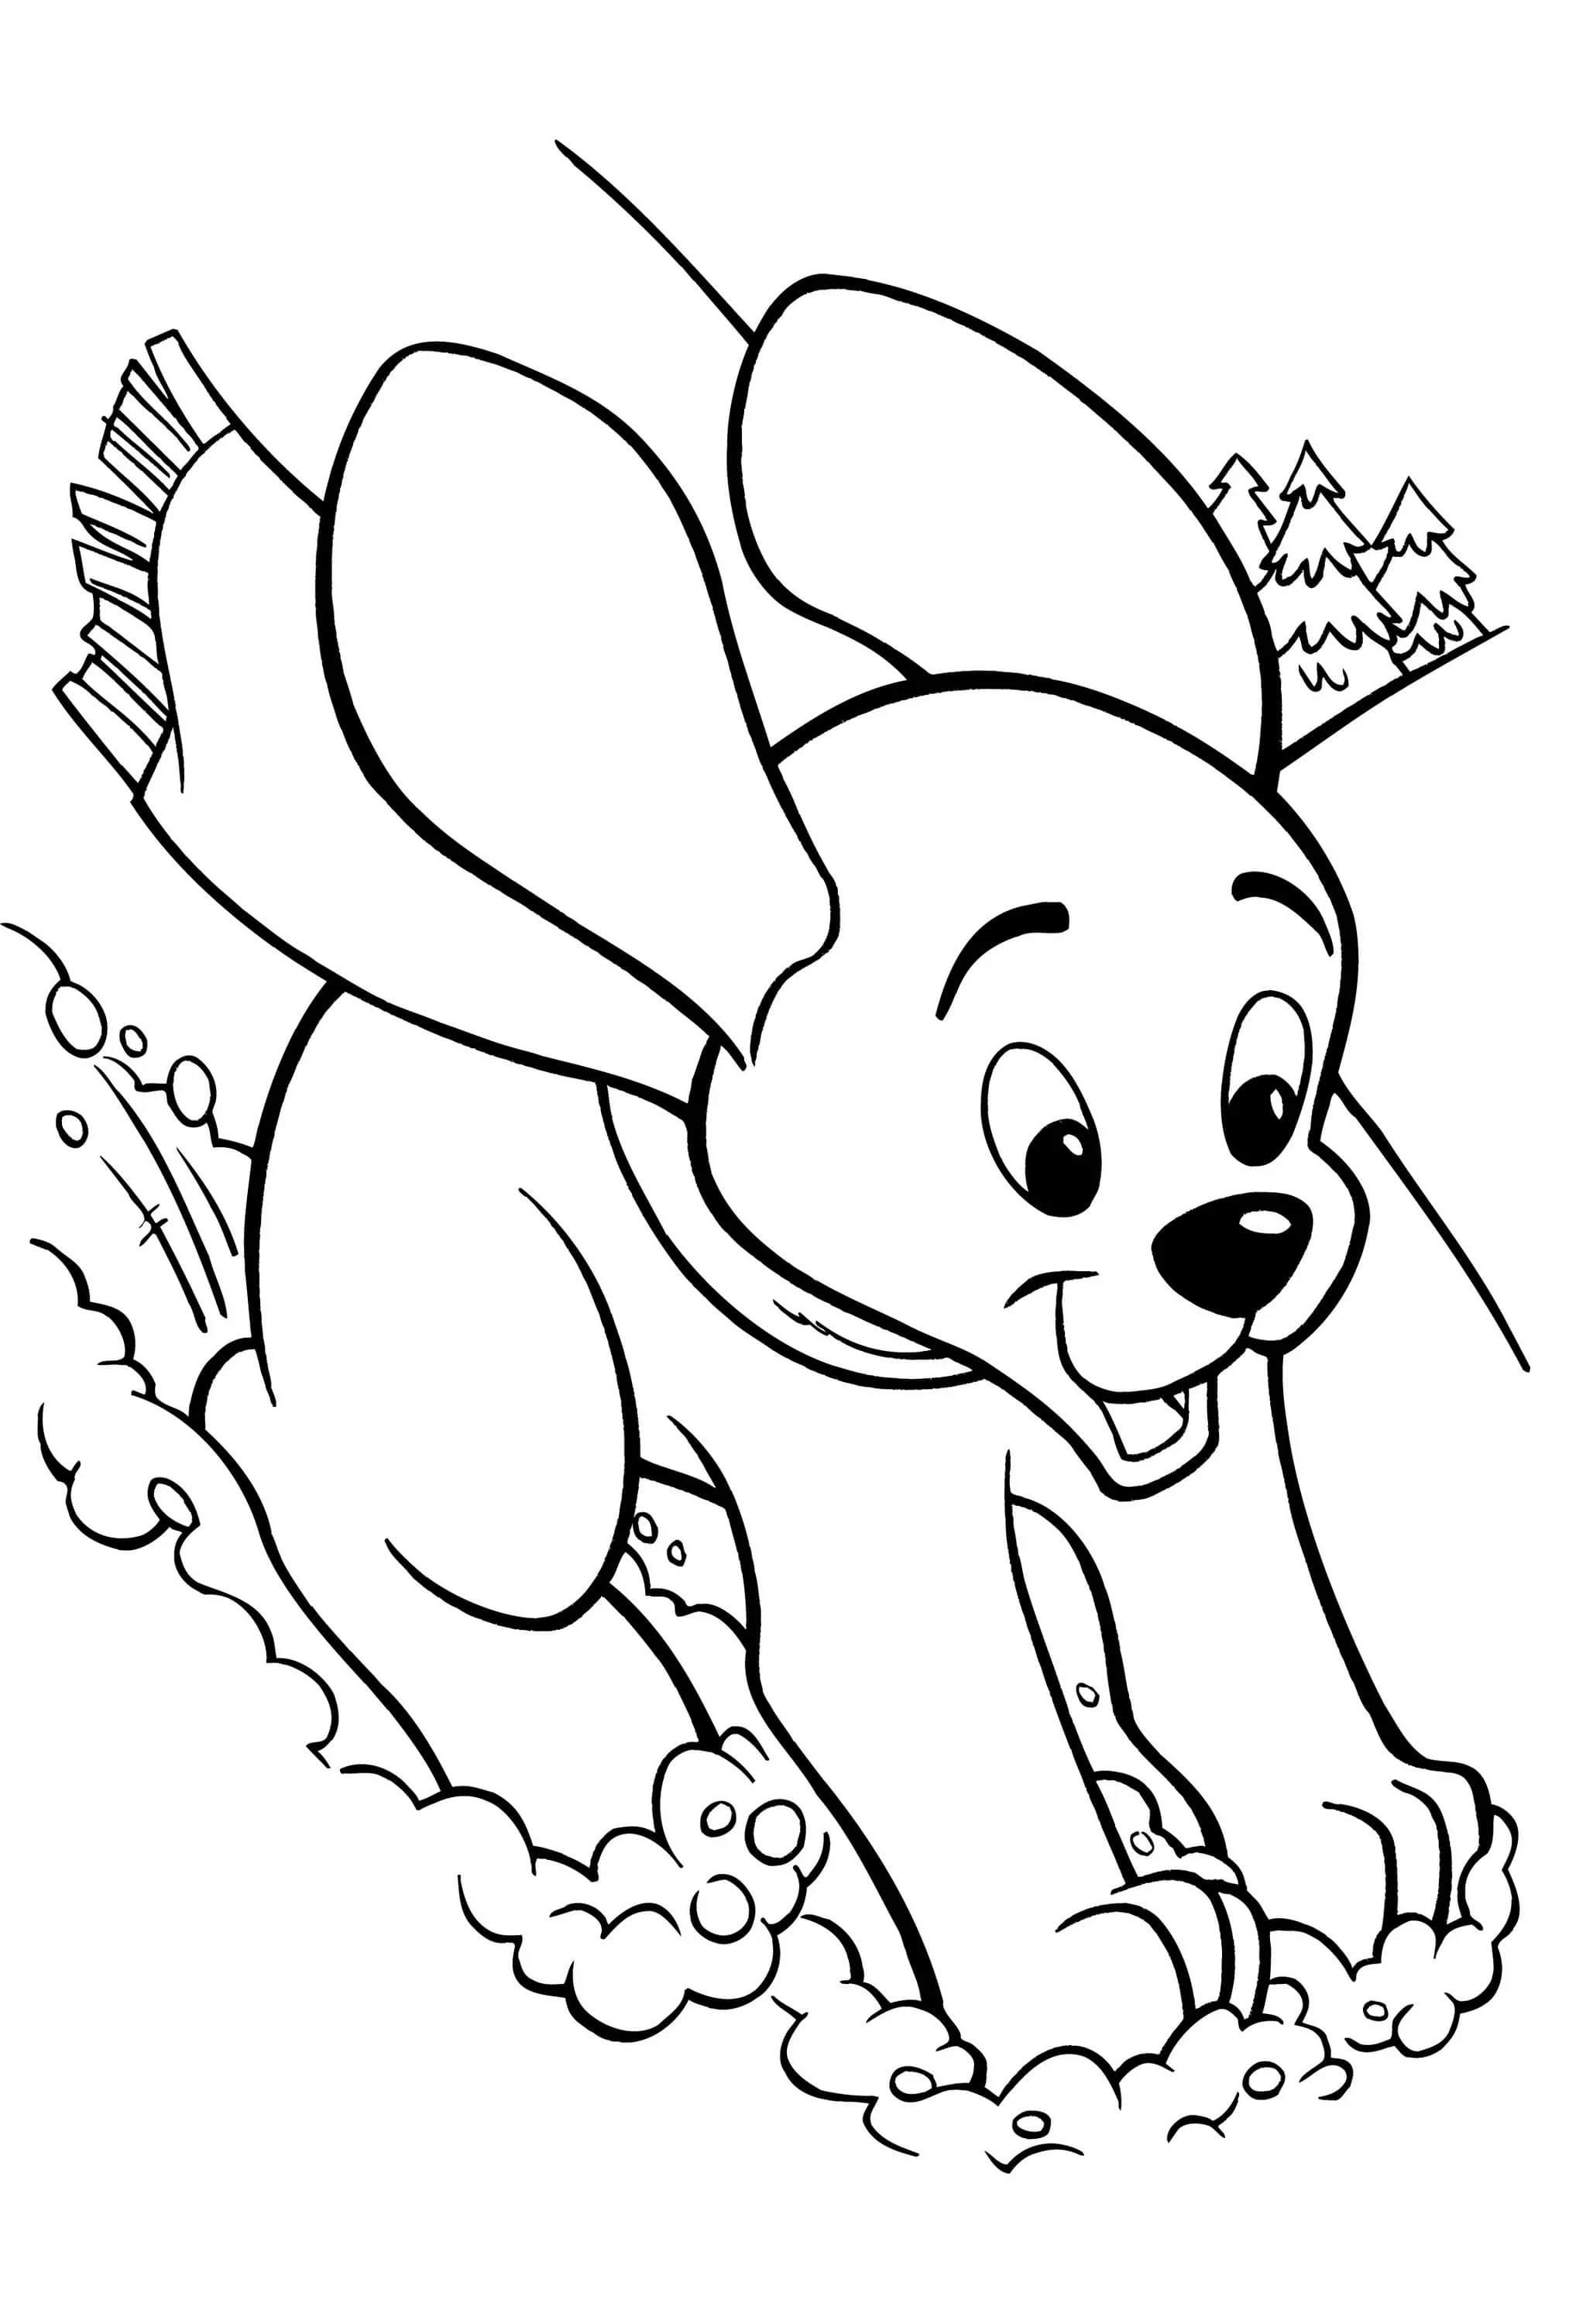 coloring sheet dog dog coloring pages printable coloring pages of dogs for coloring dog sheet